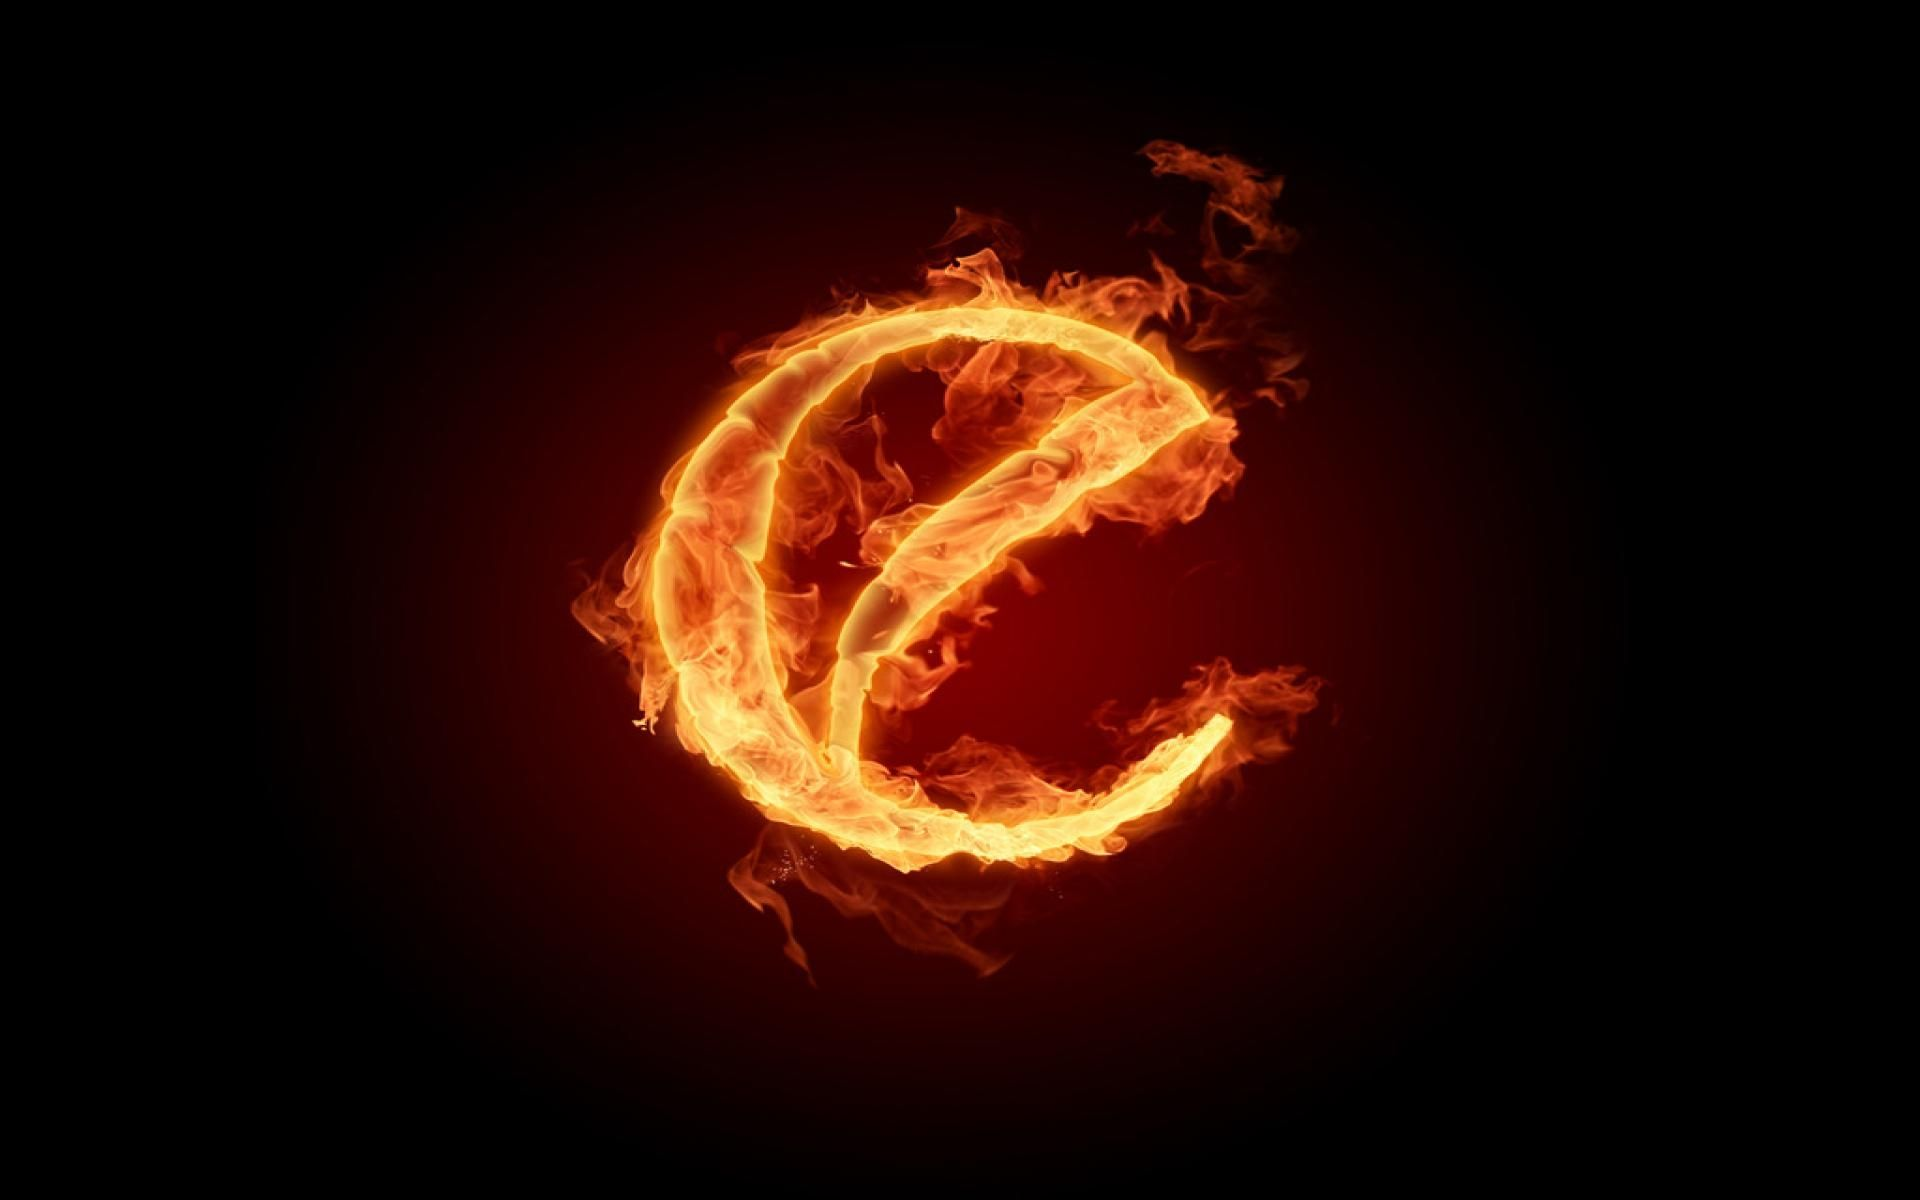 Free HD Burning Fire Letter E Wallpapers - Ventube.com